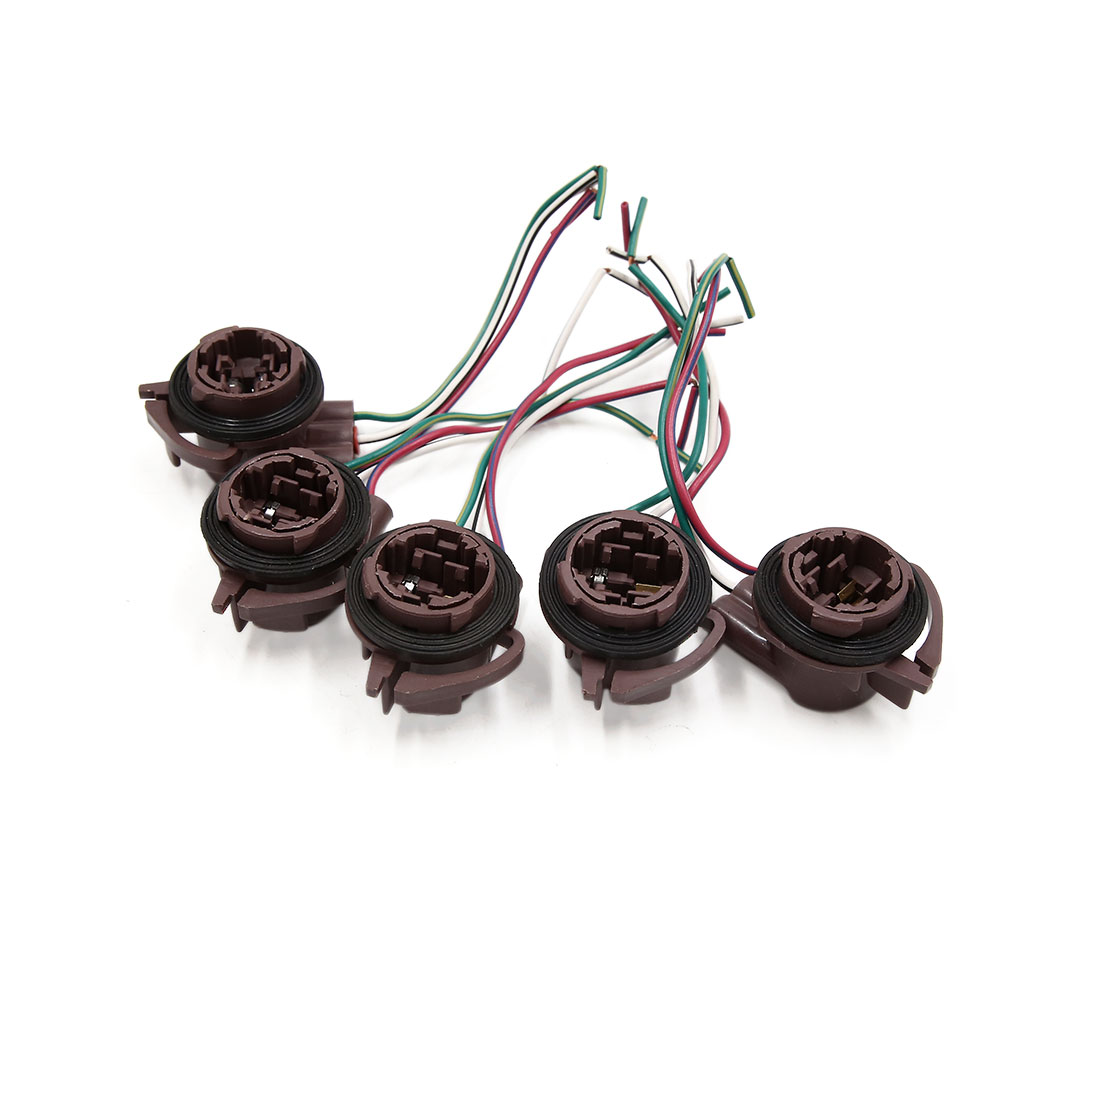 medium resolution of 5pcs 3157 3 wires car turn signal light lamp bulb wired harness socket connector walmart canada